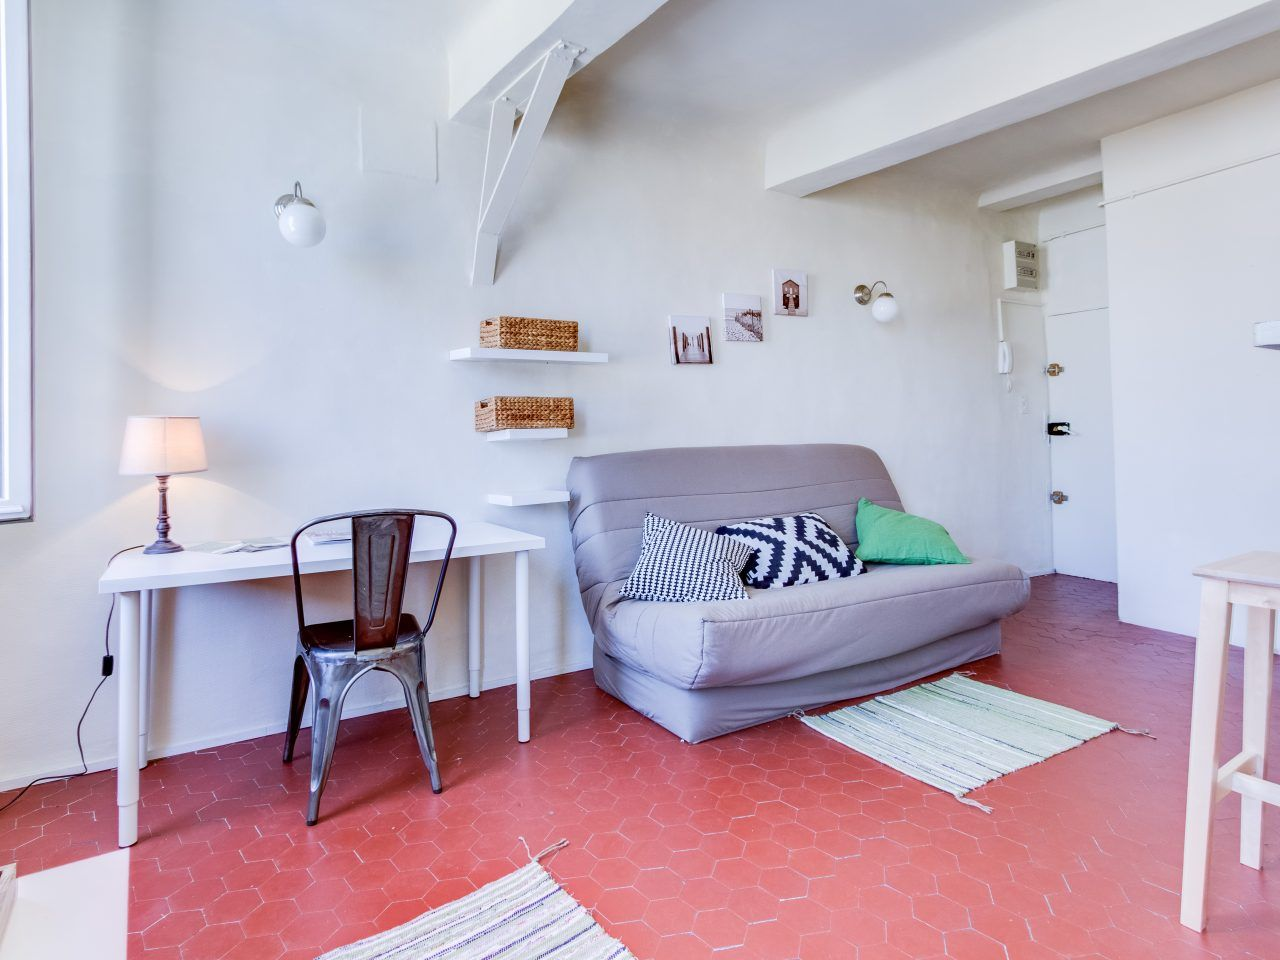 25 best ideas about appartement meubl on pinterest - Meuble cloison separation ...